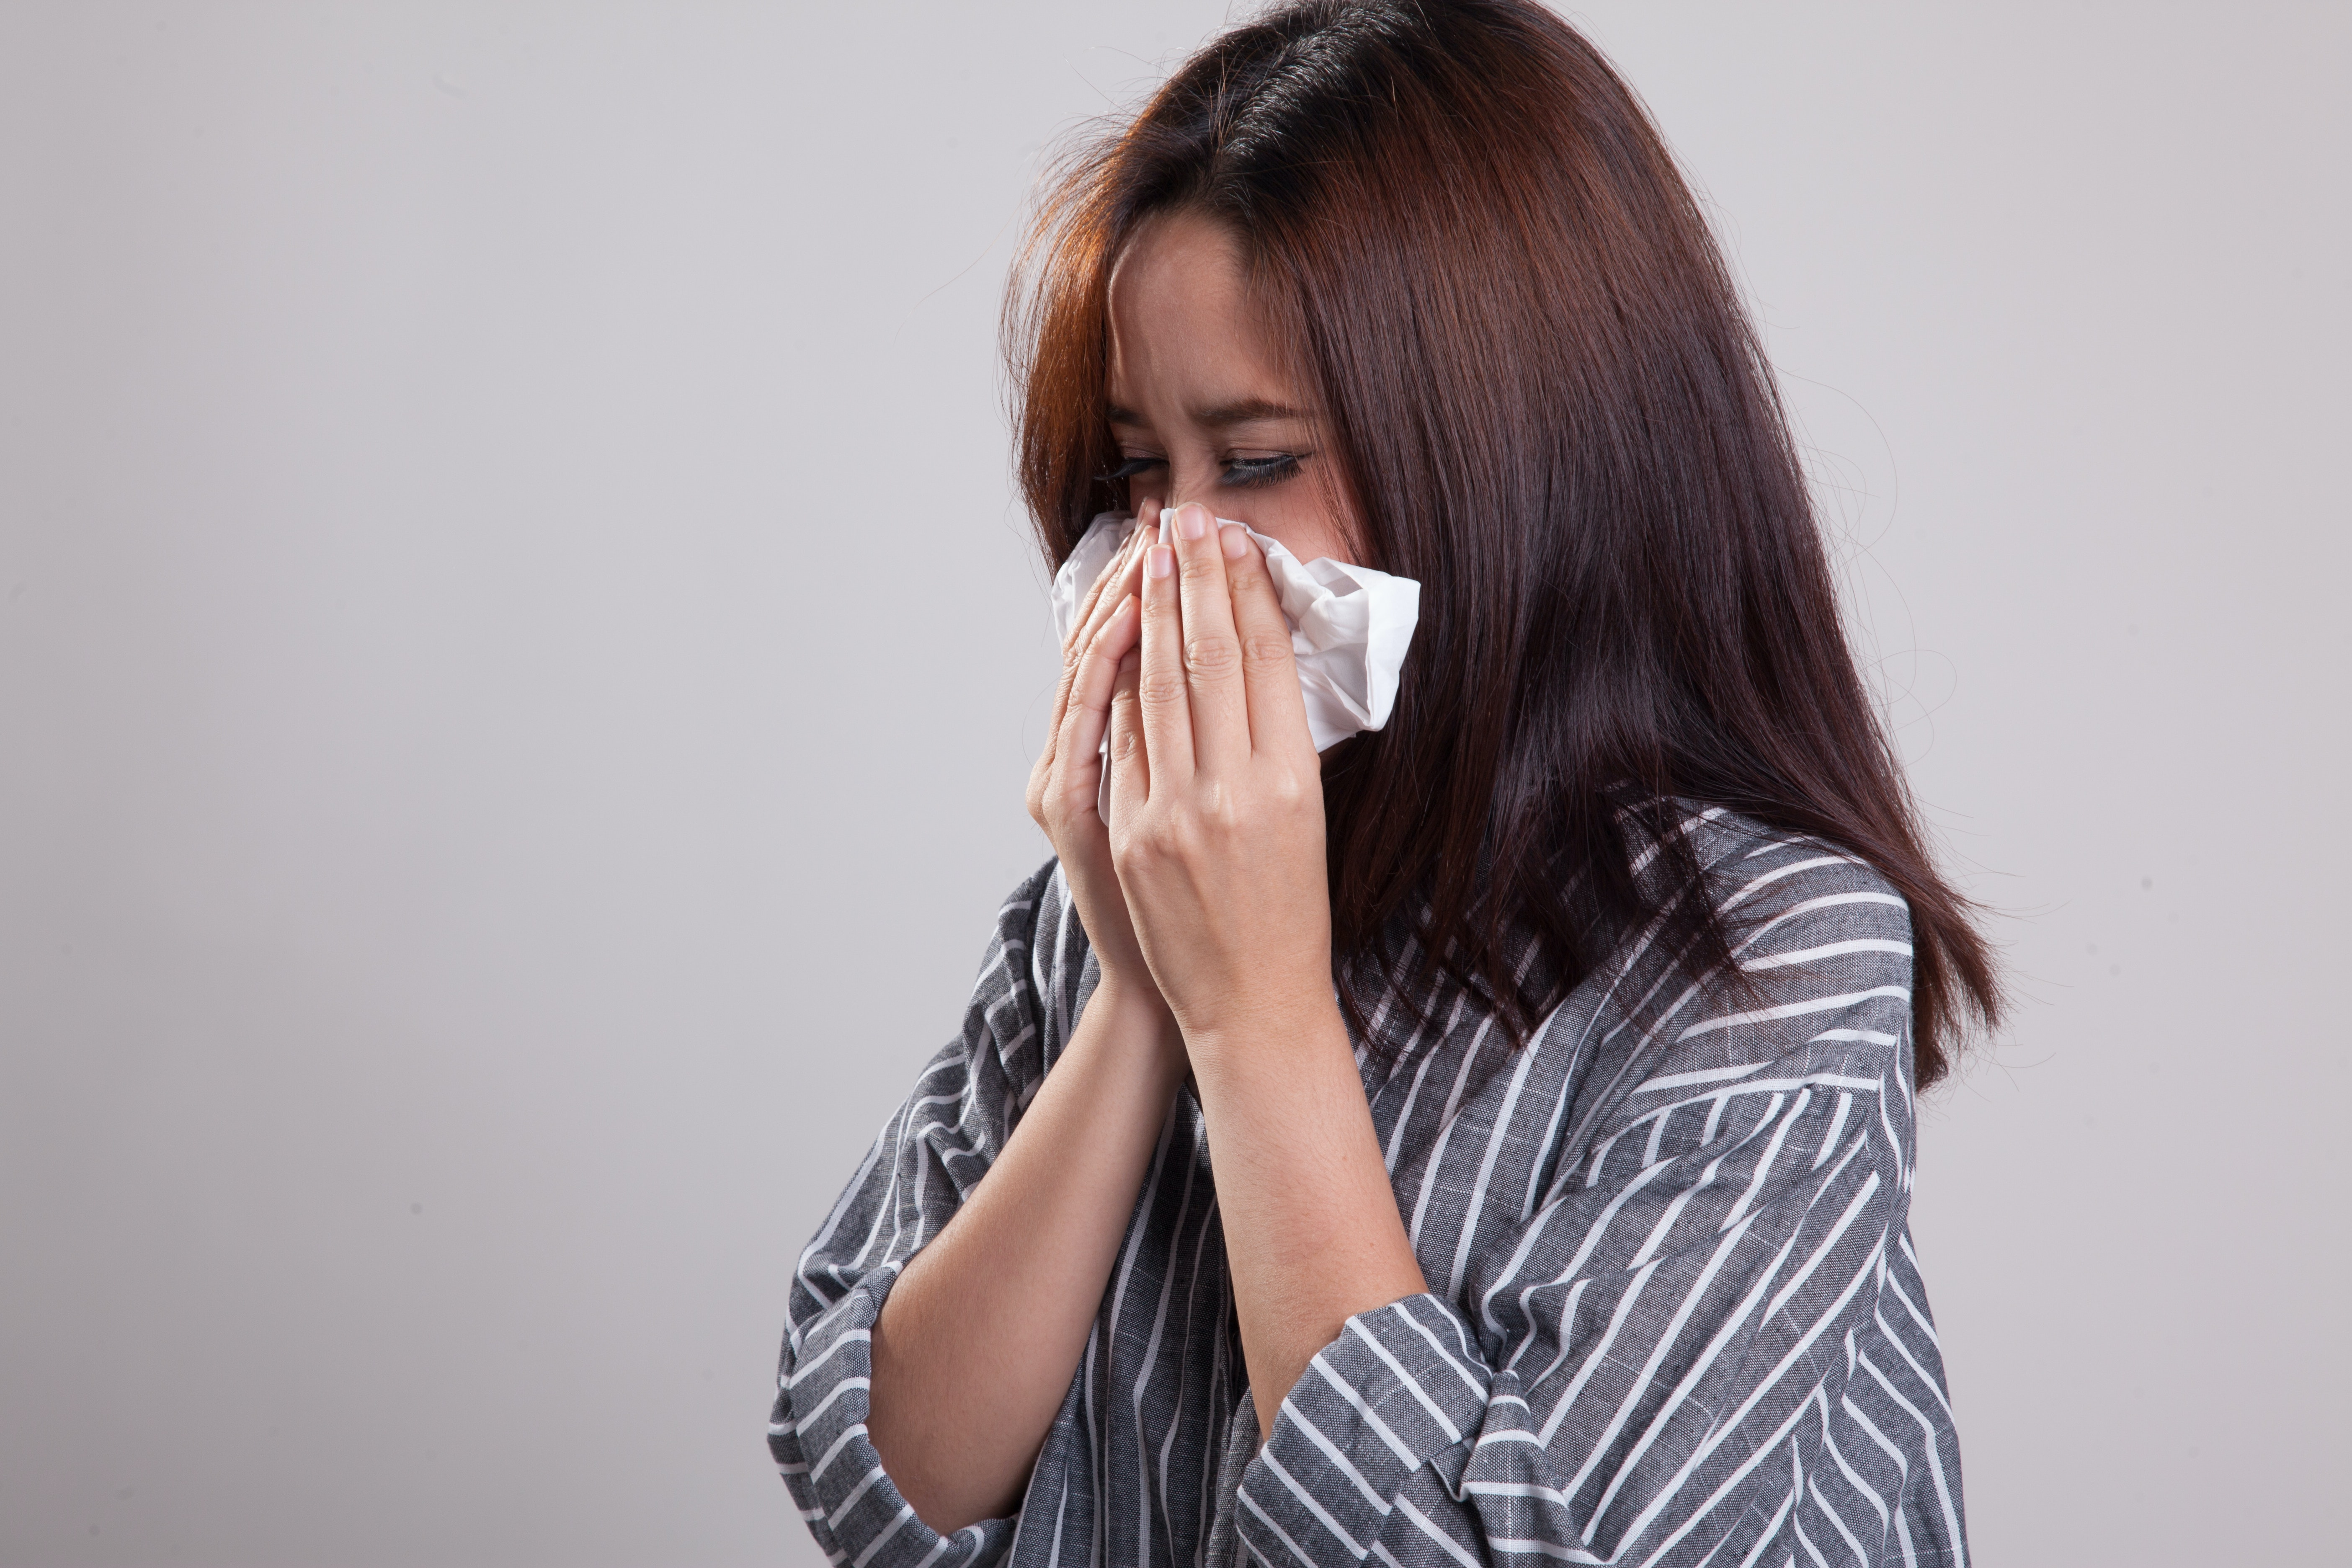 An image depicting a person suffering from frequent sneezing symptoms